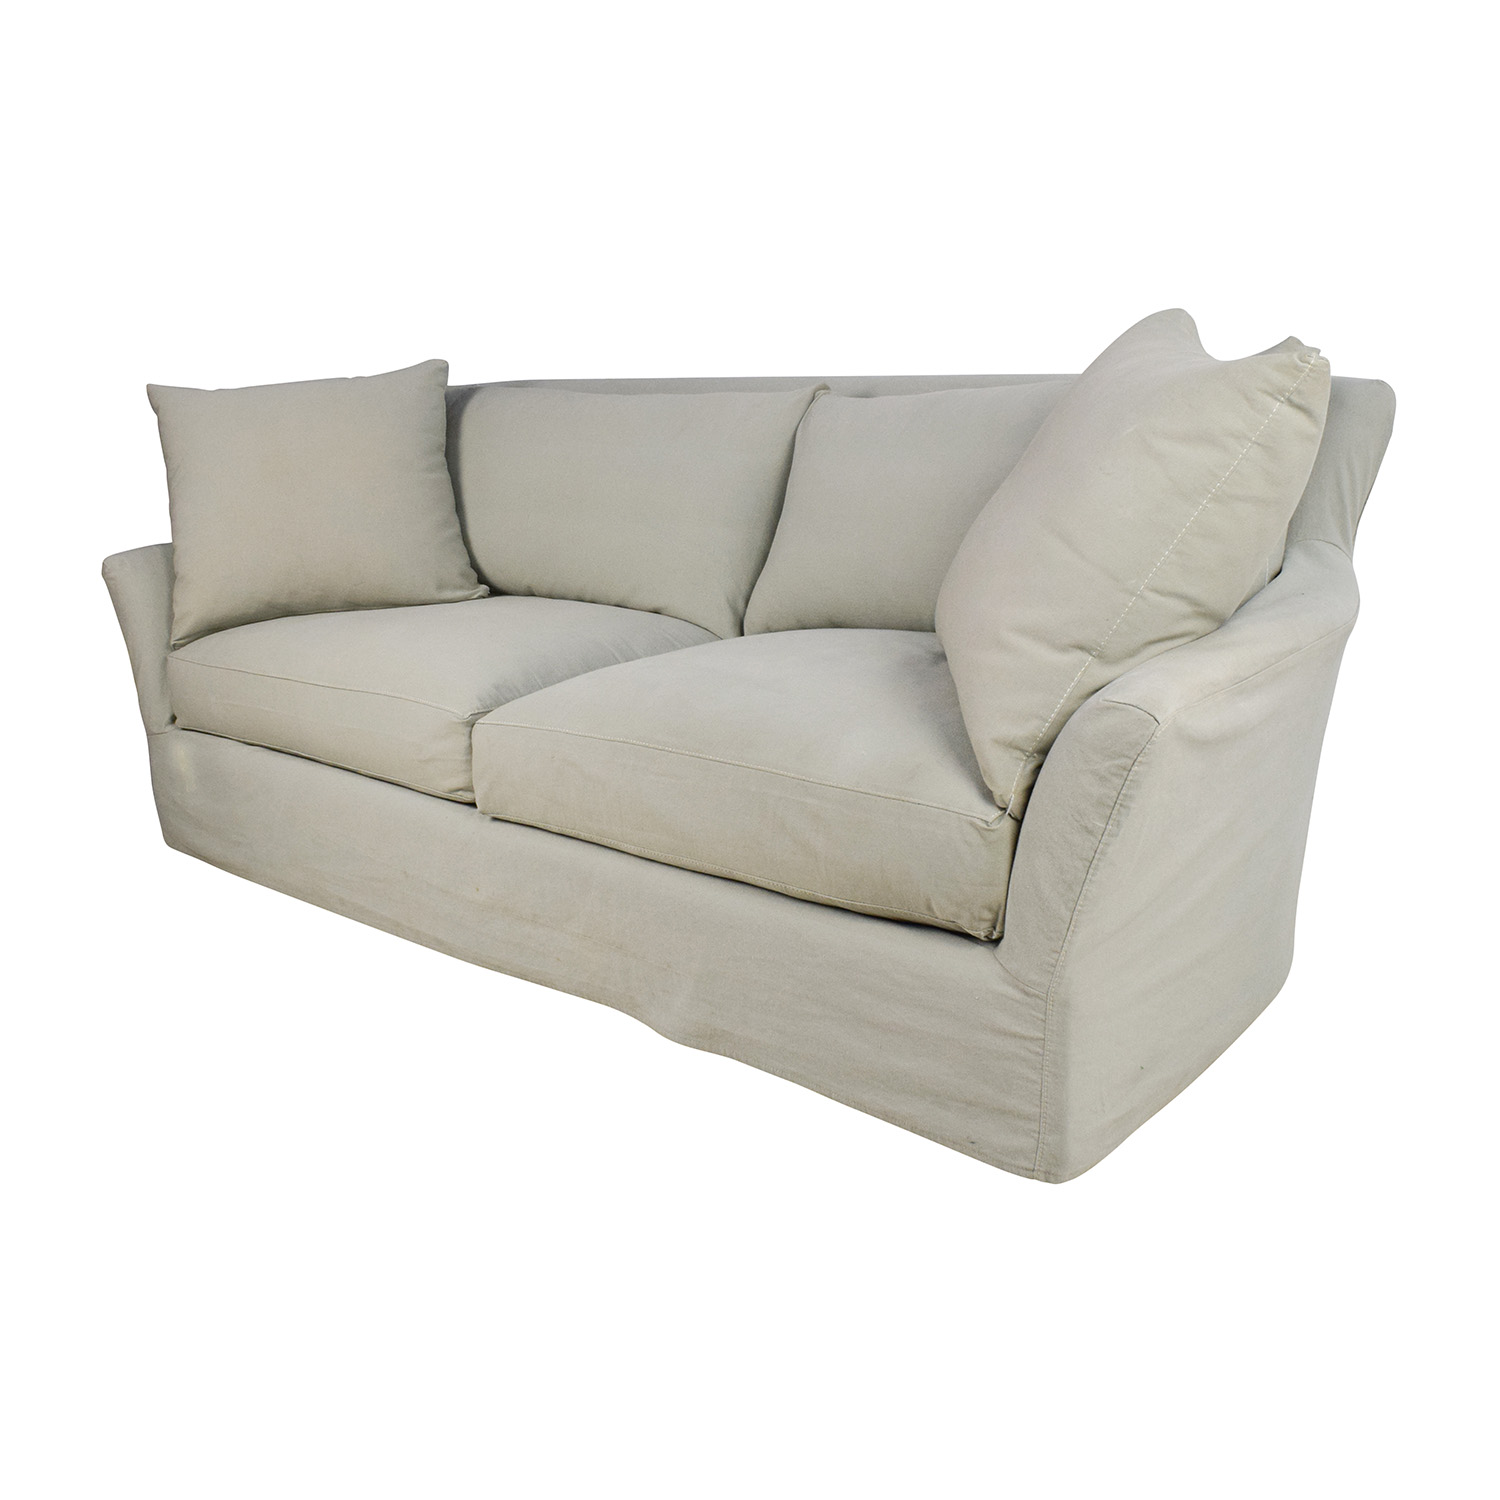 Willow Sleeper Sofa Crate And Barrel Teachfamiliesorg